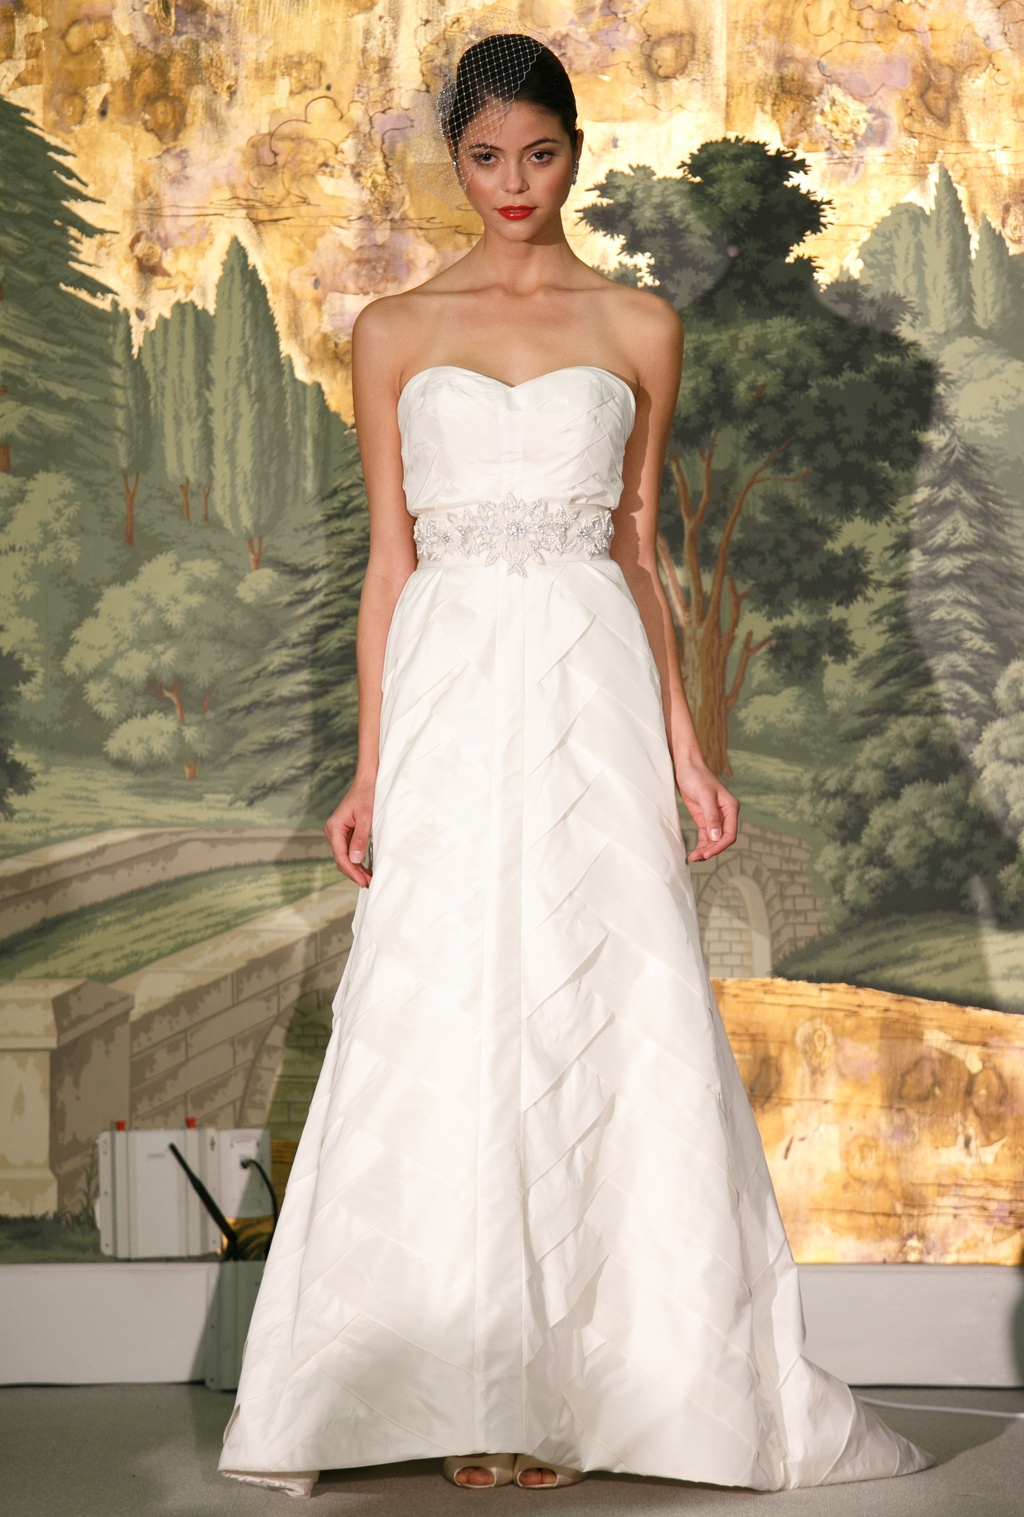 Wedding-dress-by-anne-barge-spring-2014-bridal-grenadier.full